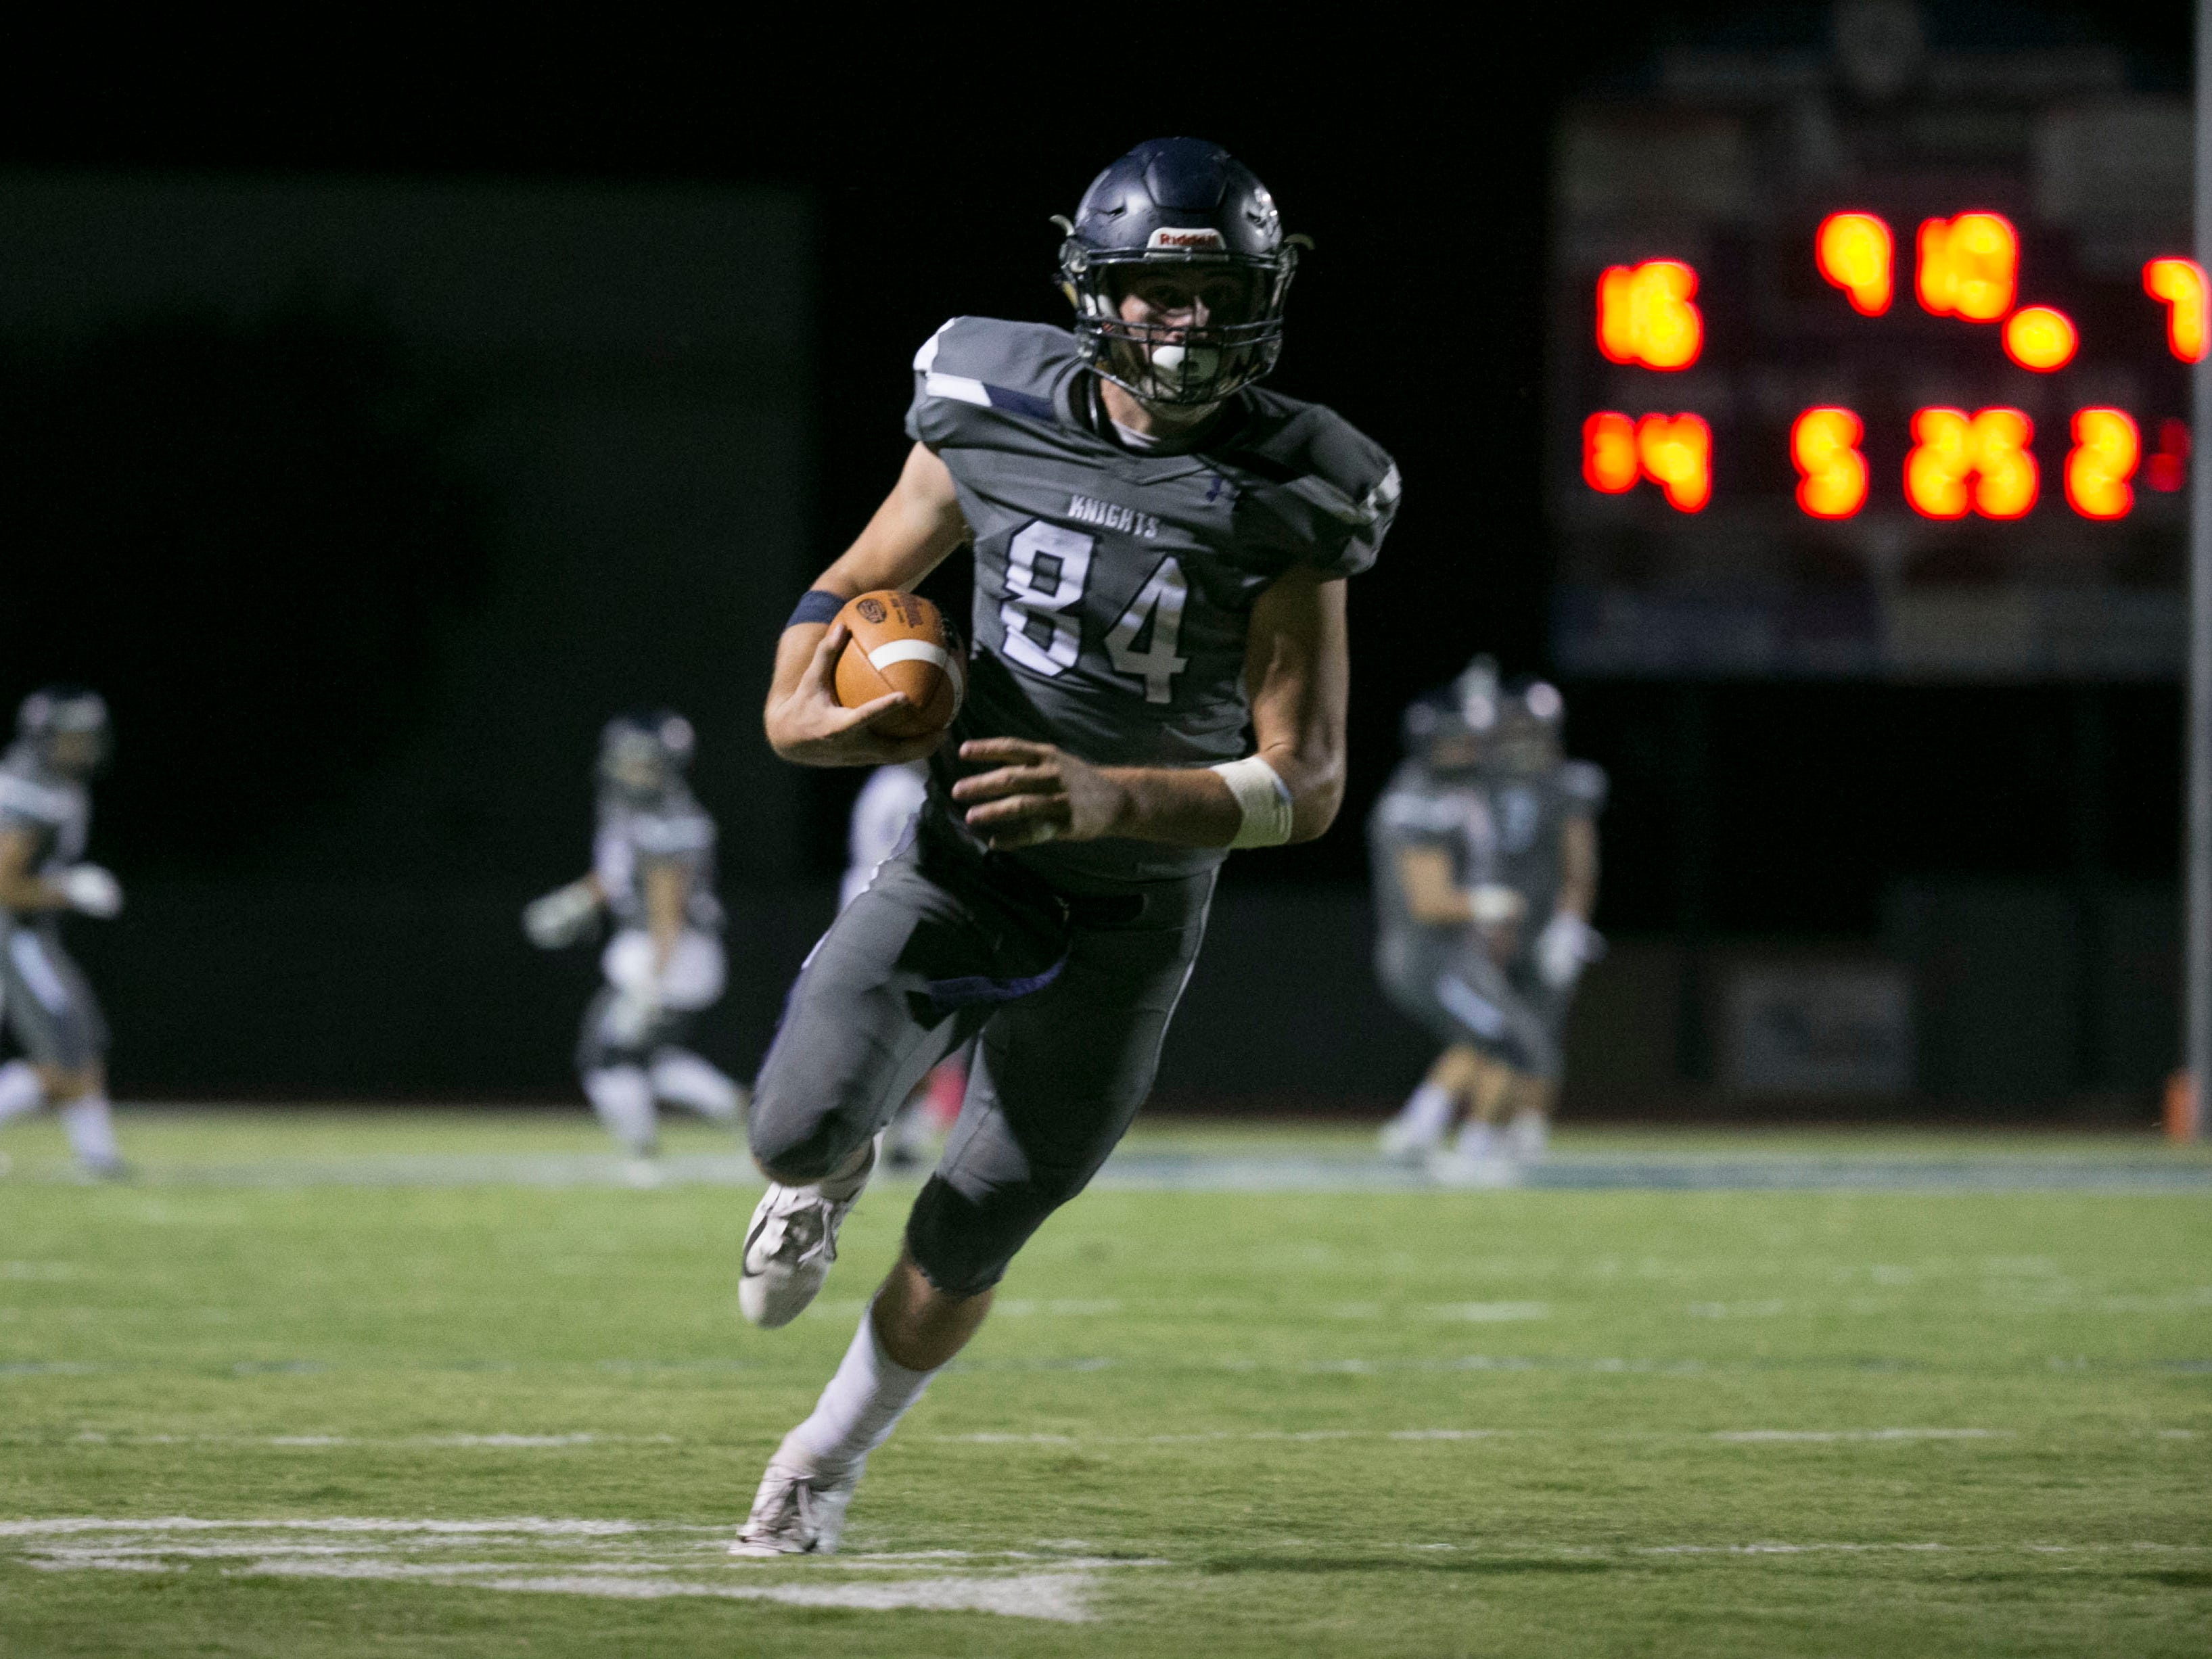 Higley High's Logan Maxwell scores a touchdown after blocking a punt on Millennium High during the second quarter of the high school football game at Higley High in Gilbert on Friday evening, September 14, 2018.